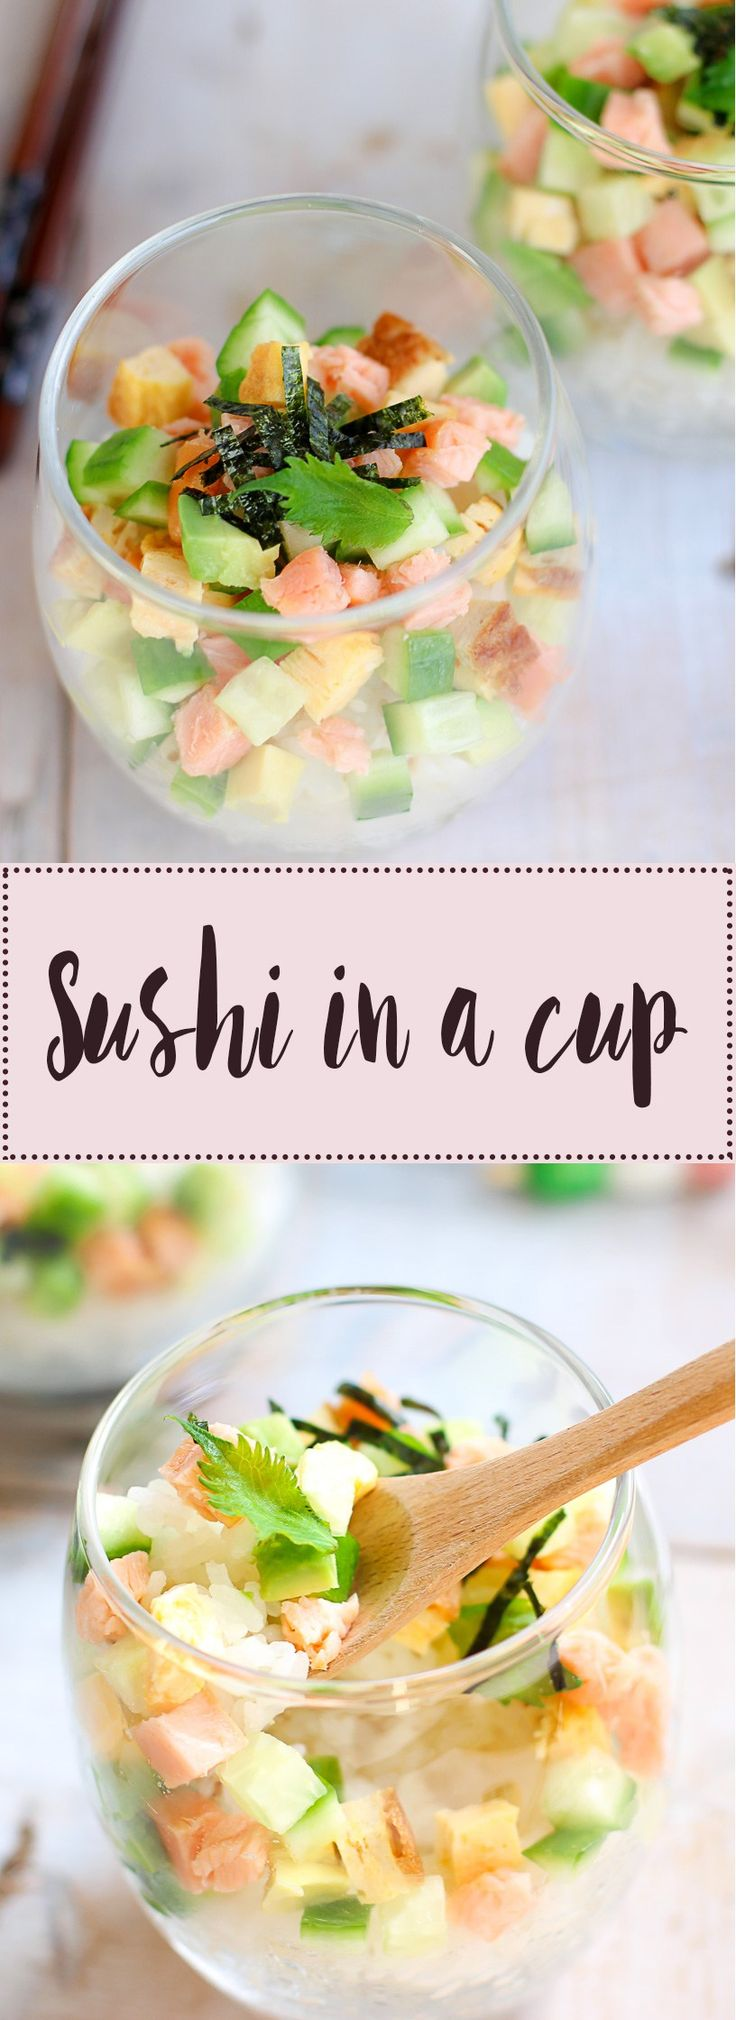 This Super Simple Sushi In a Cup recipe is an extremely simple and quick alternative to regular rolled sushi. It's also very versatile and tastes delicious!